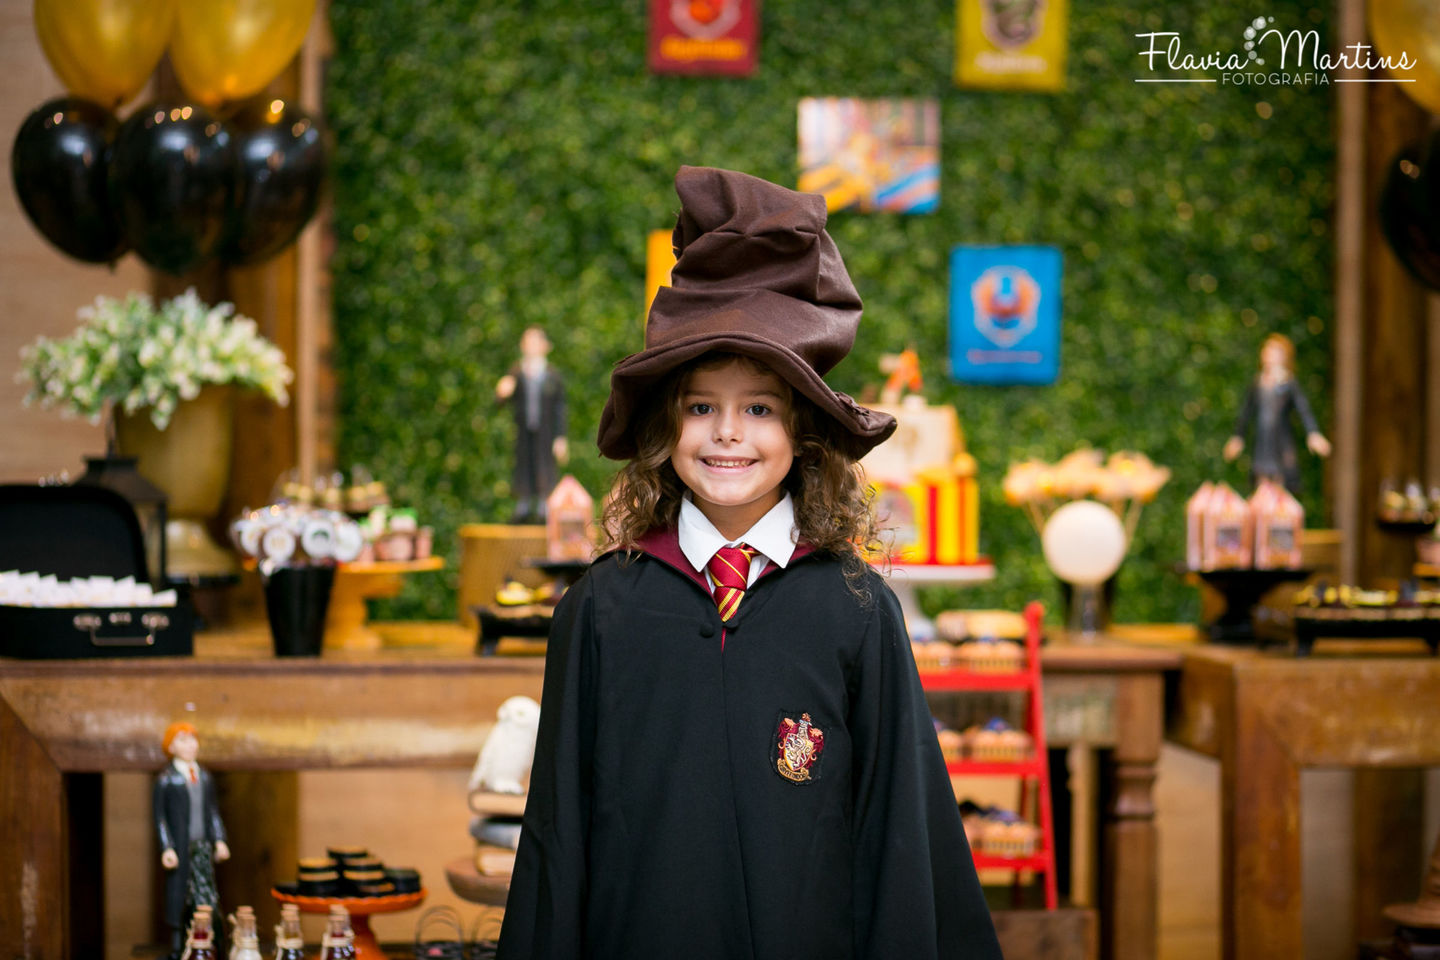 Festa Giovanna - Harry Potter